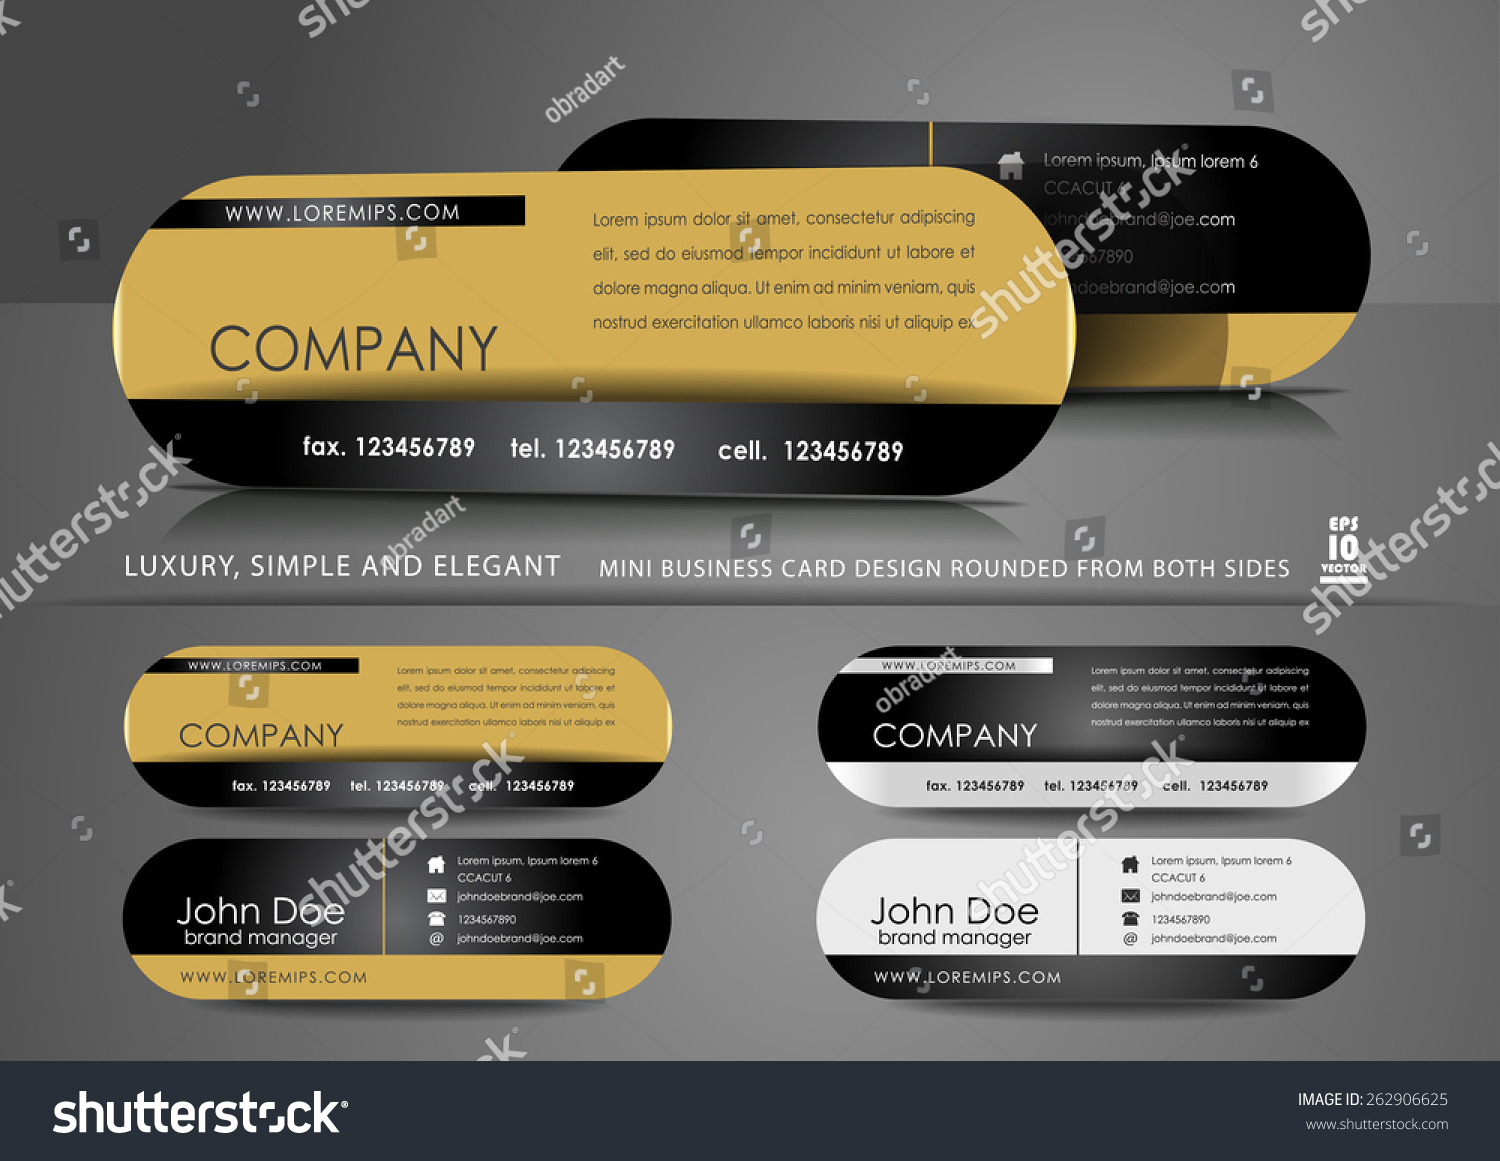 Mini Business Card Design Black Gold Stock Vector HD (Royalty Free ...